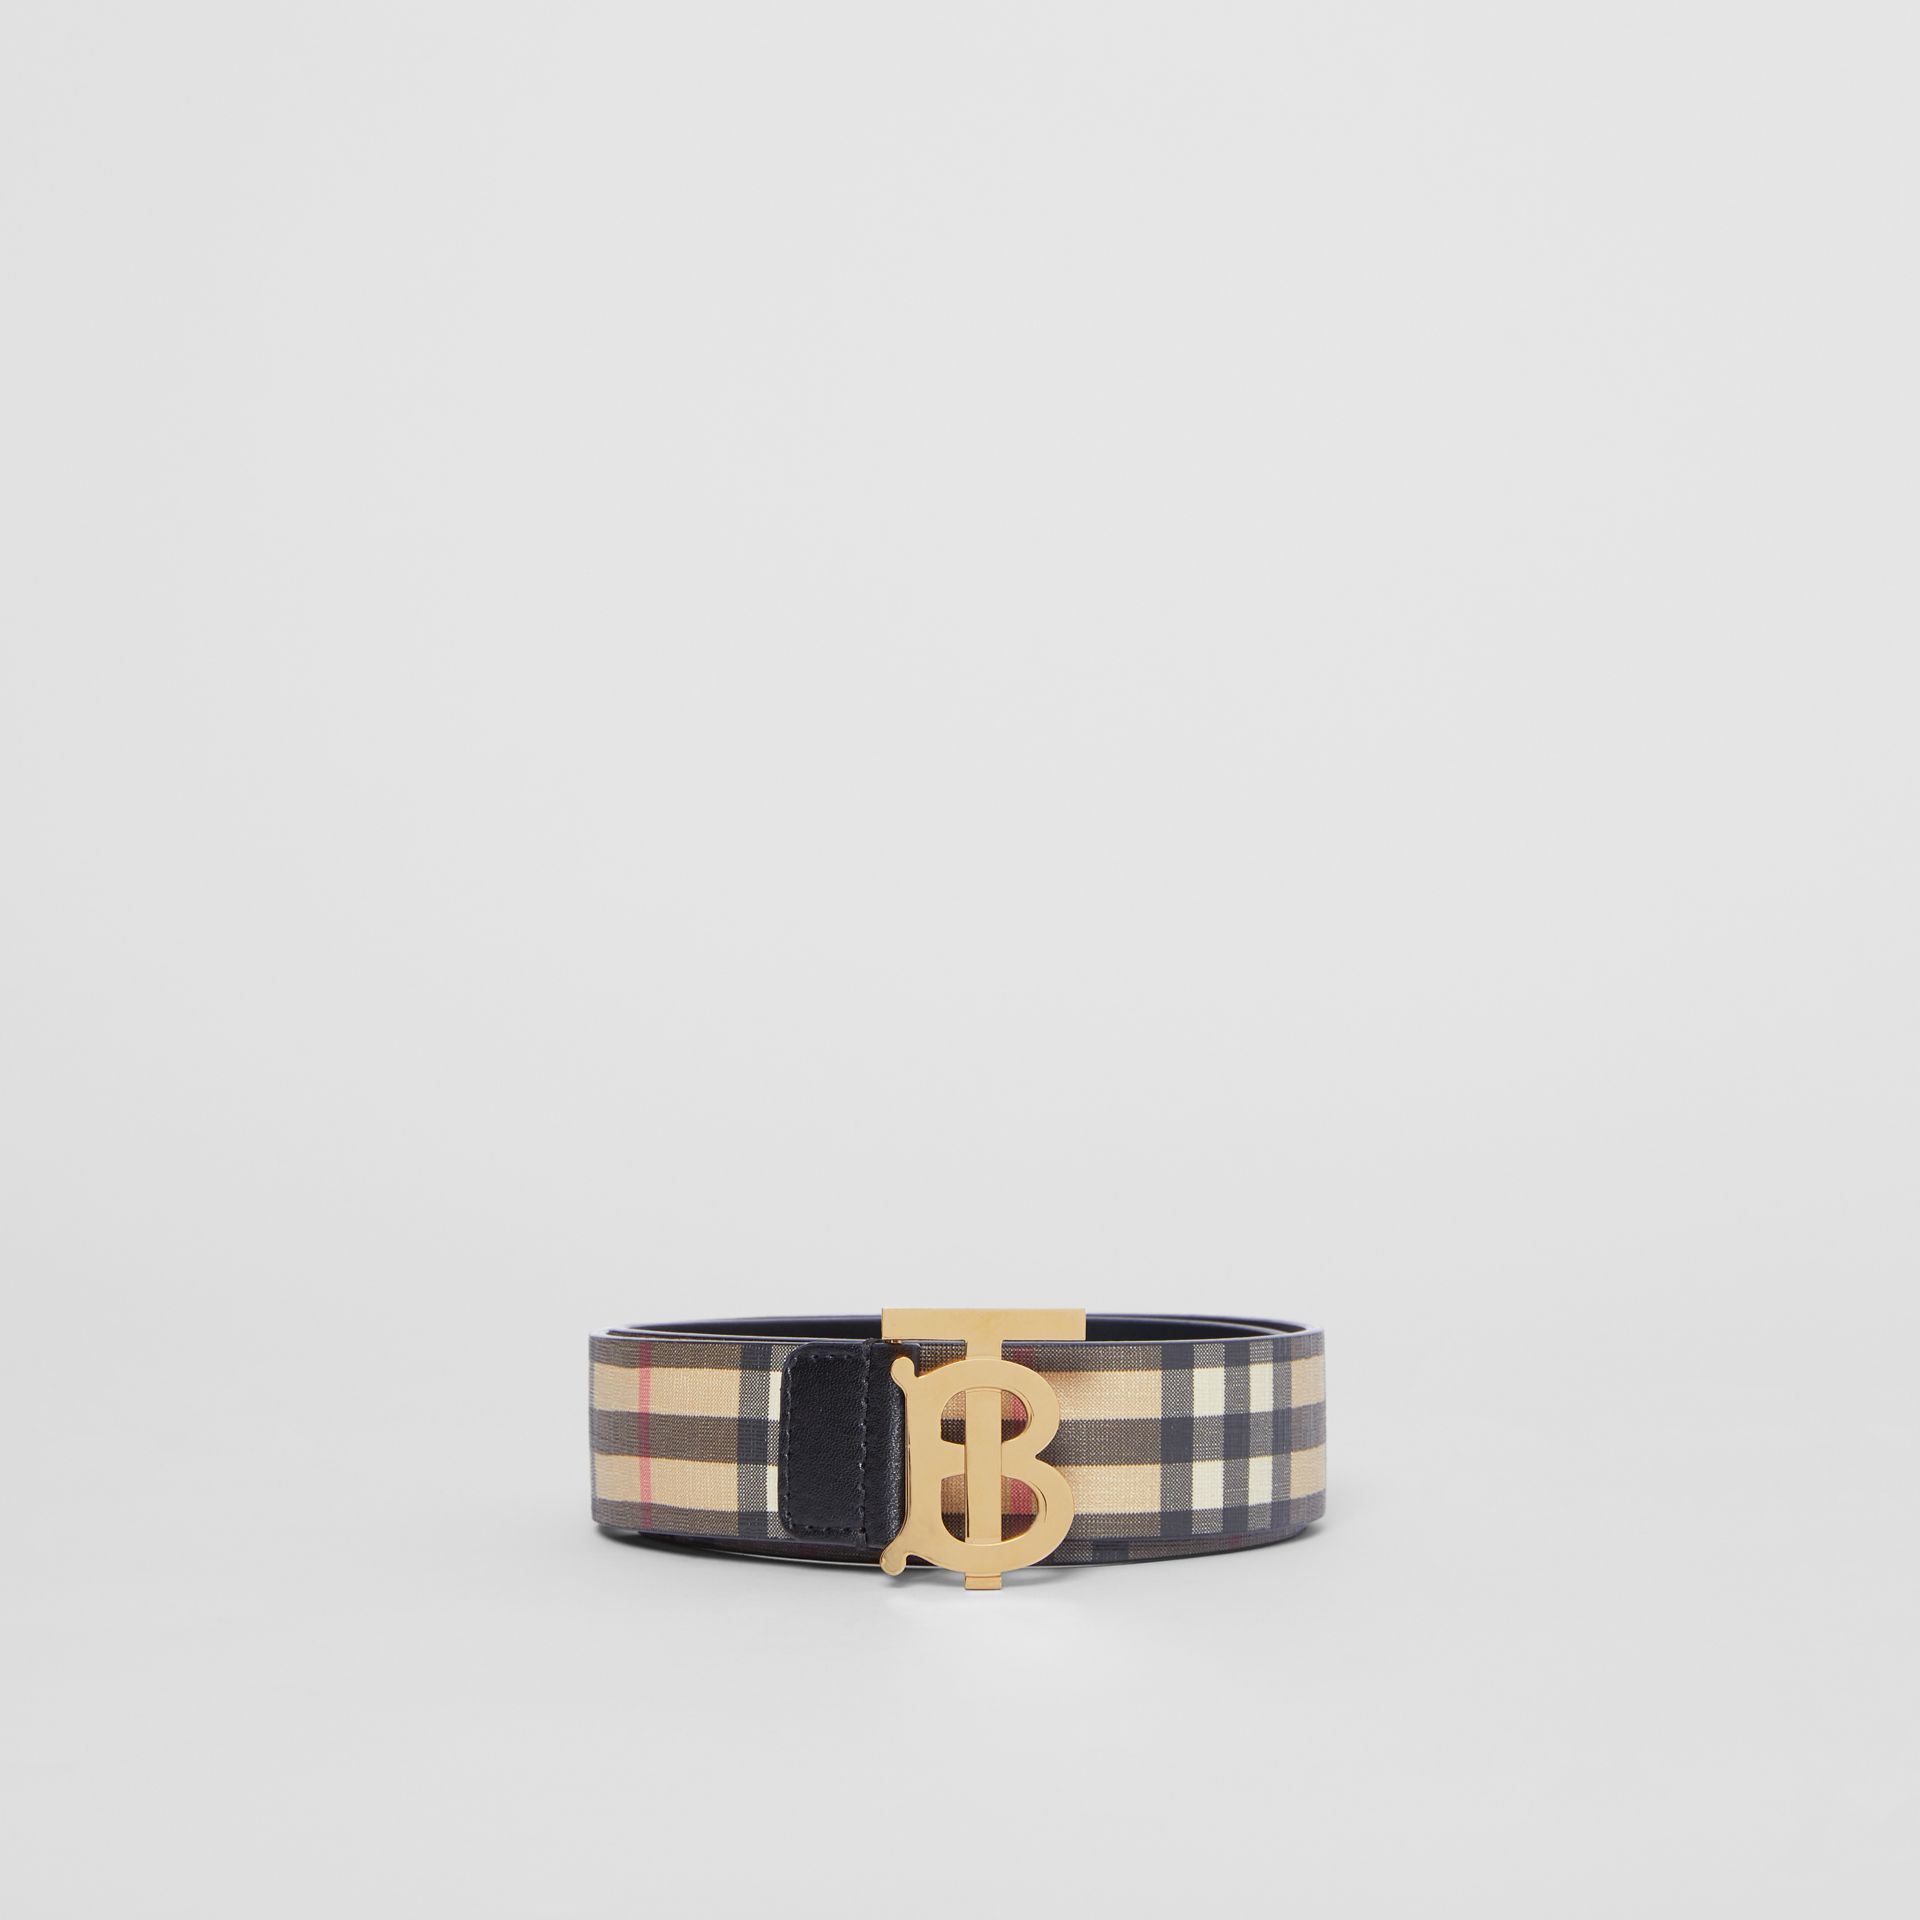 Monogram Motif Vintage Check E-canvas Belt in Archive Beige - Women | Burberry - gallery image 3